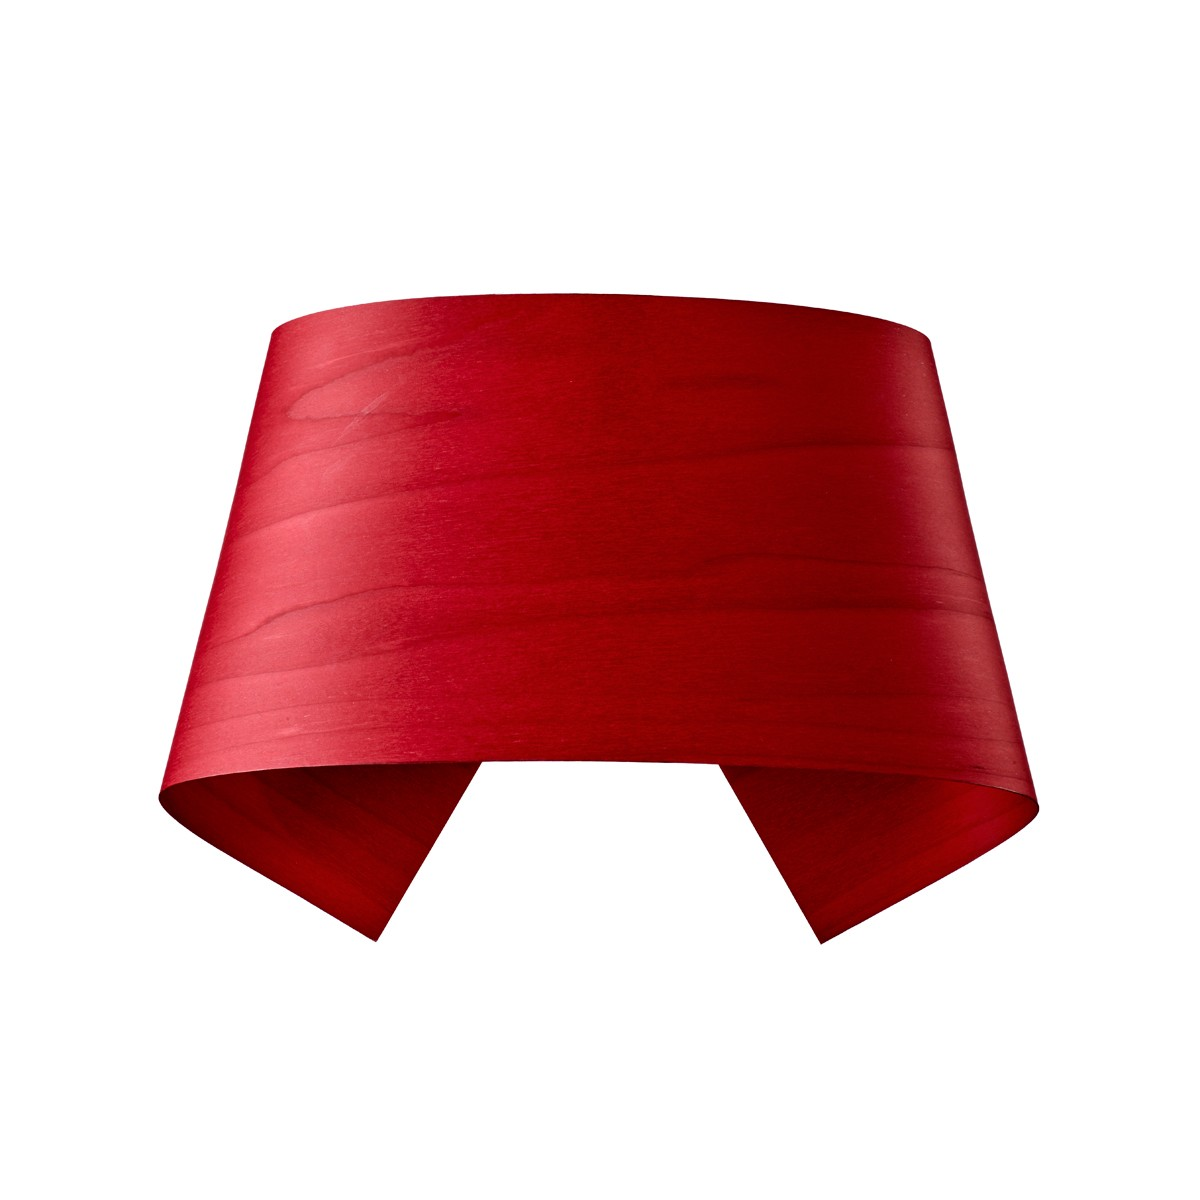 LZF Lamps Hi-Collar LED Wandleuchte, rot